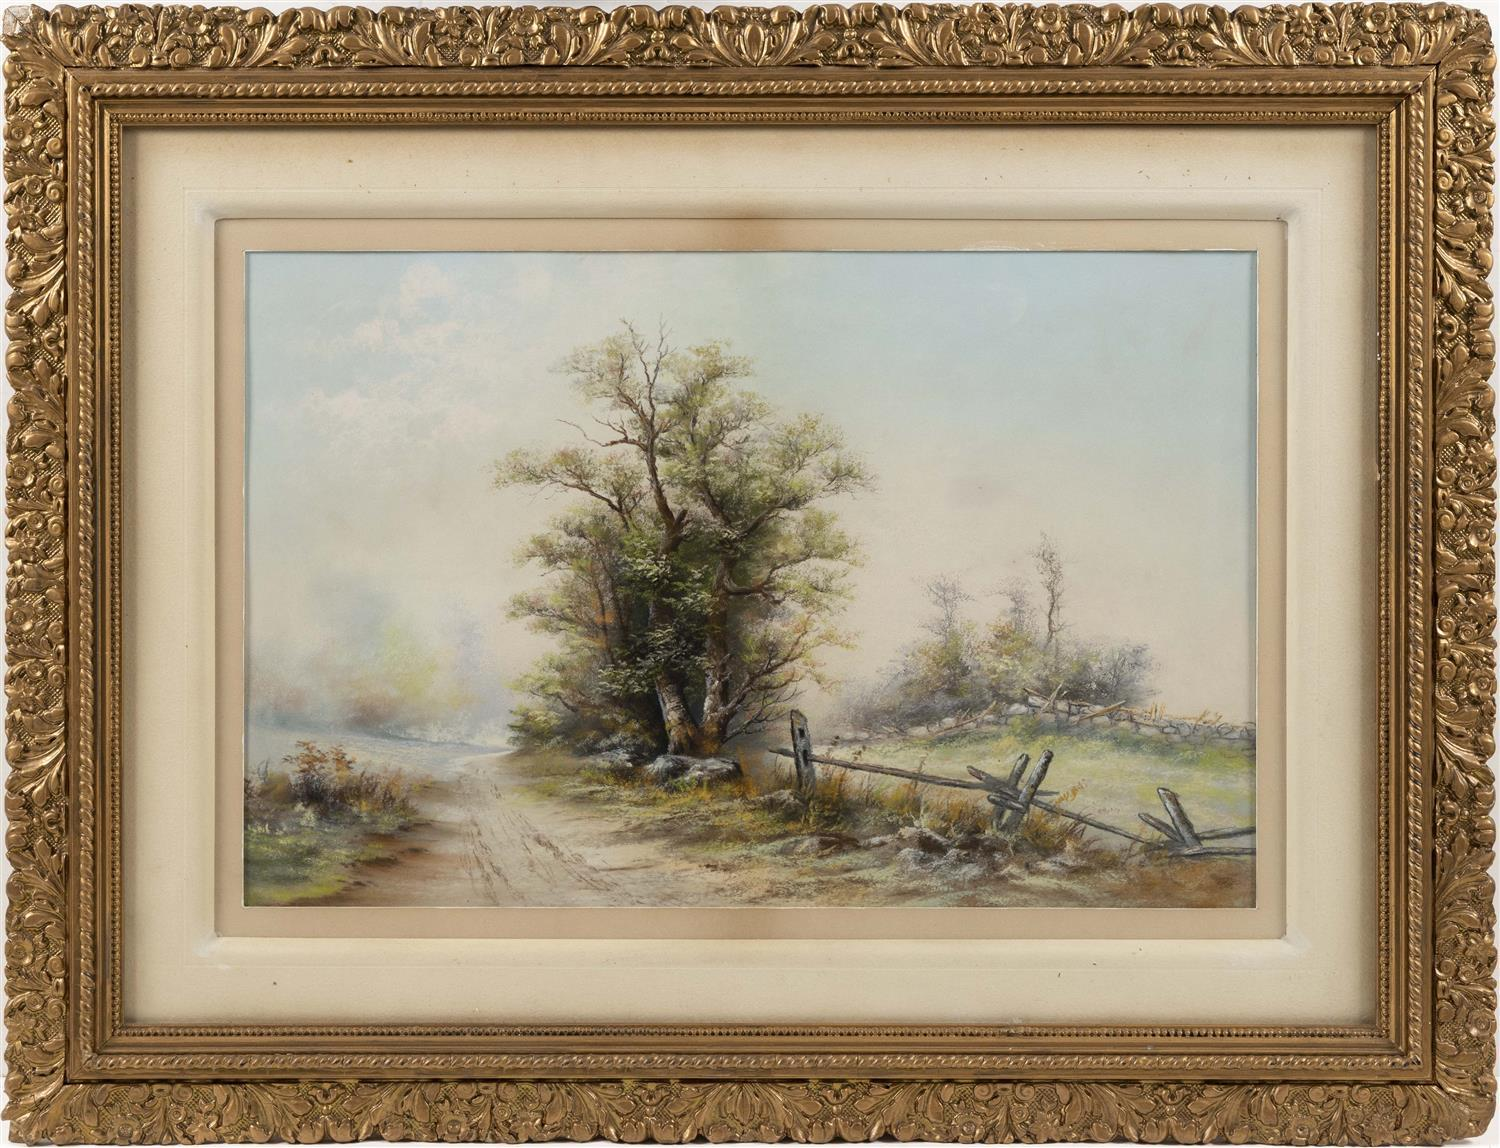 "AMERICAN SCHOOL, Early 20th Century, Winter pastoral landscape., Pastel on paper, 21"" x 30"". Framed 27"" x 35""."